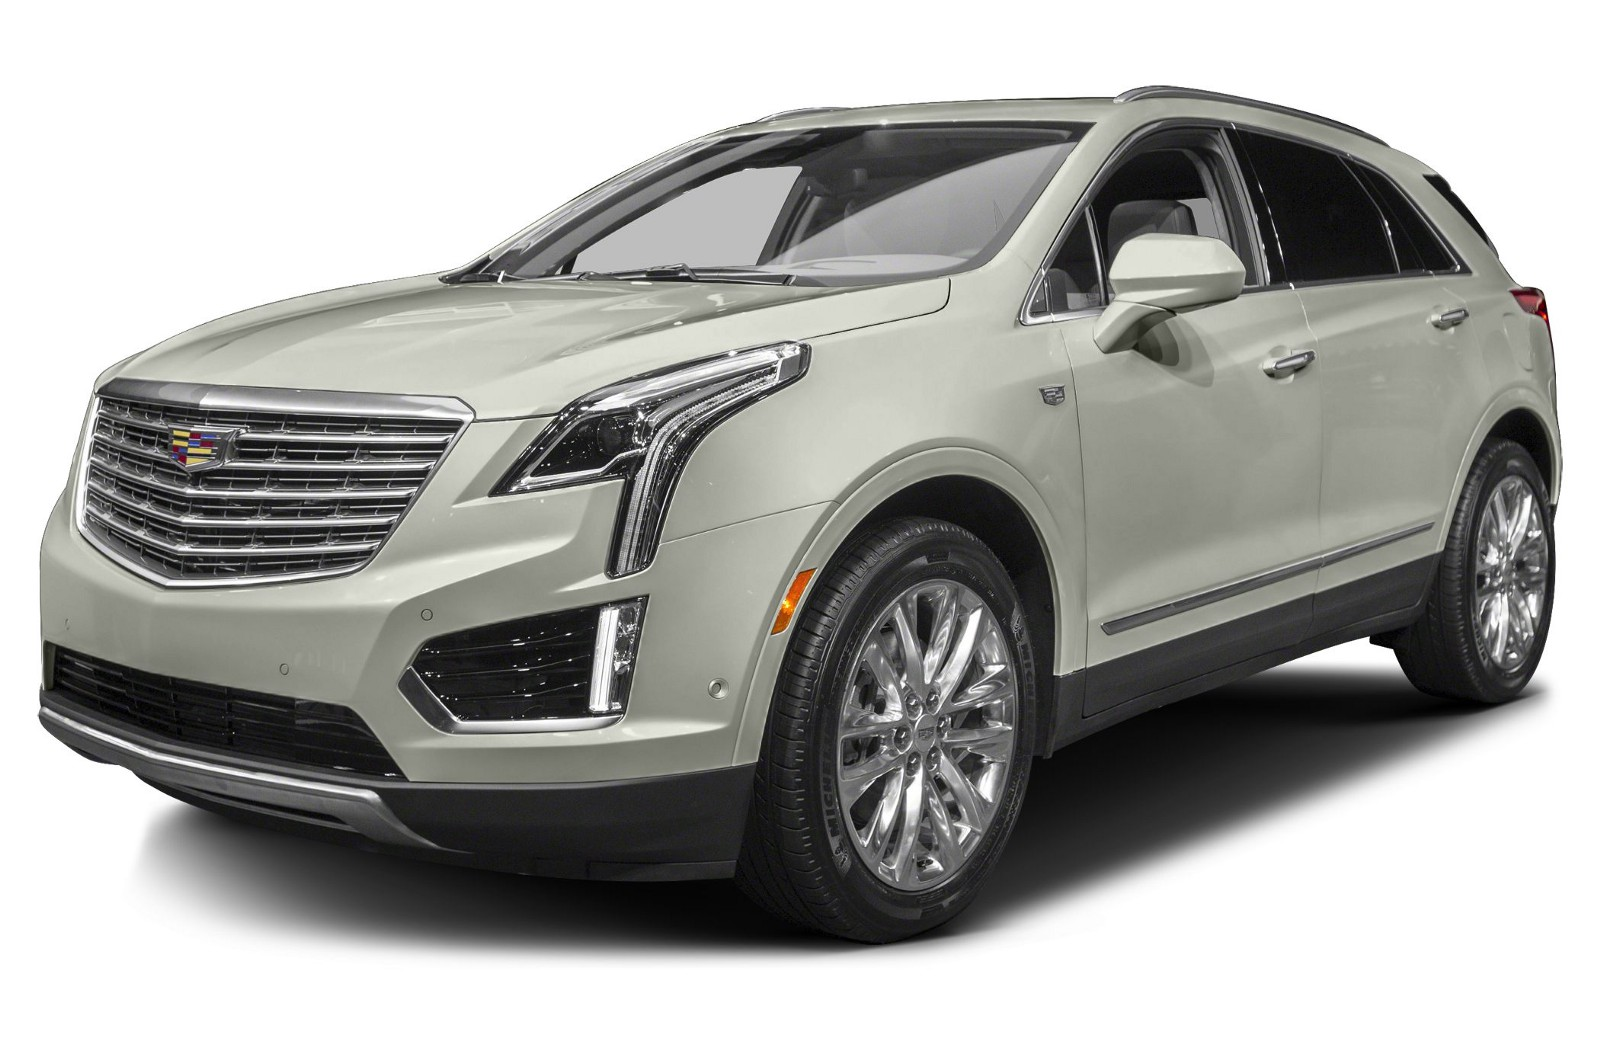 Buying 2017 Cadillac XT5 Premium Luxury Crossover